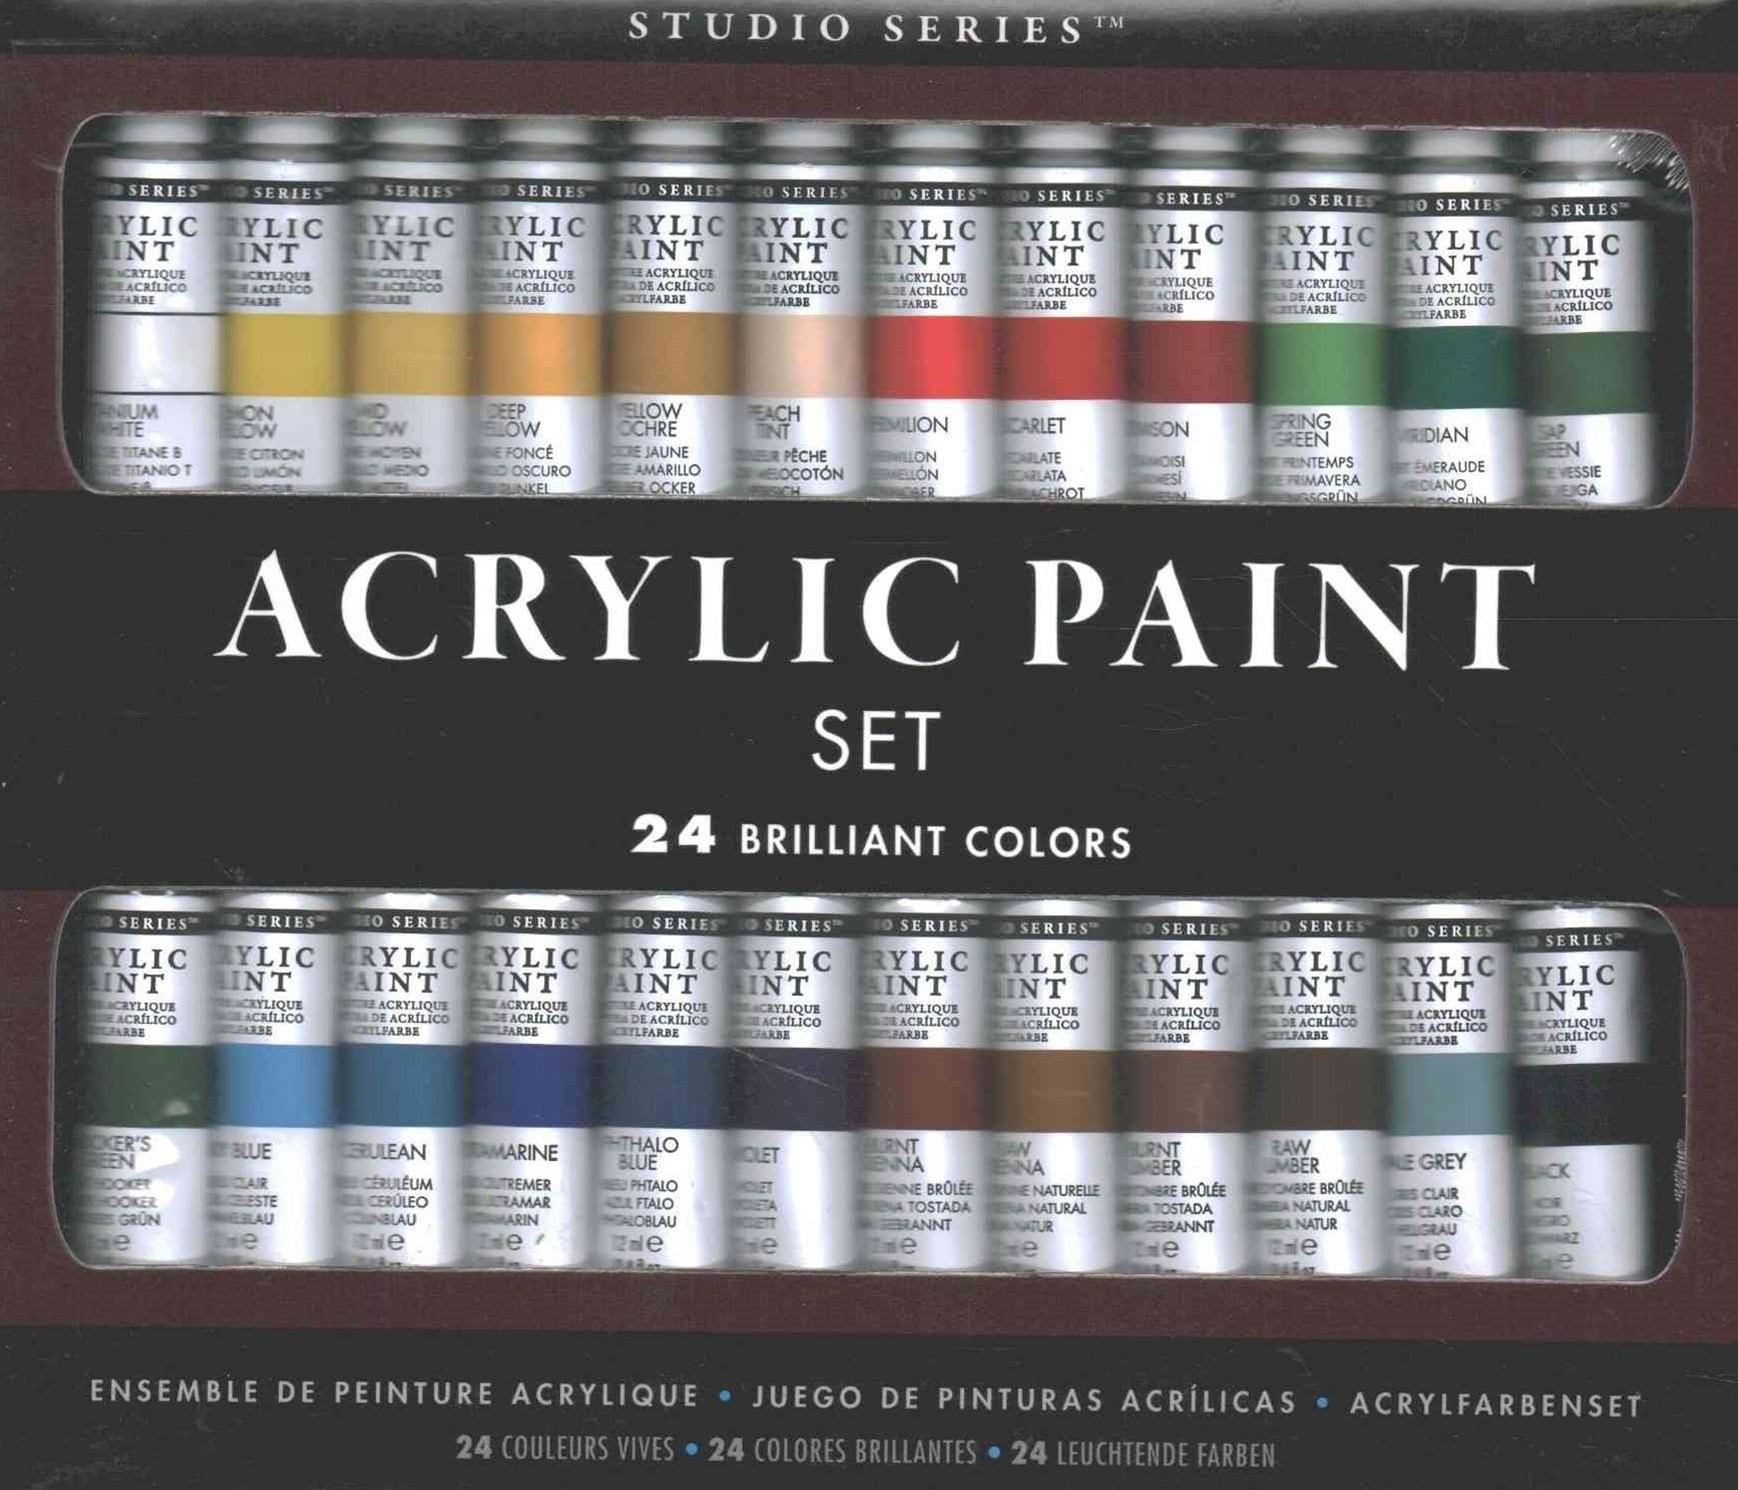 Studio Series Acrylic Paint Set, 24 Colors